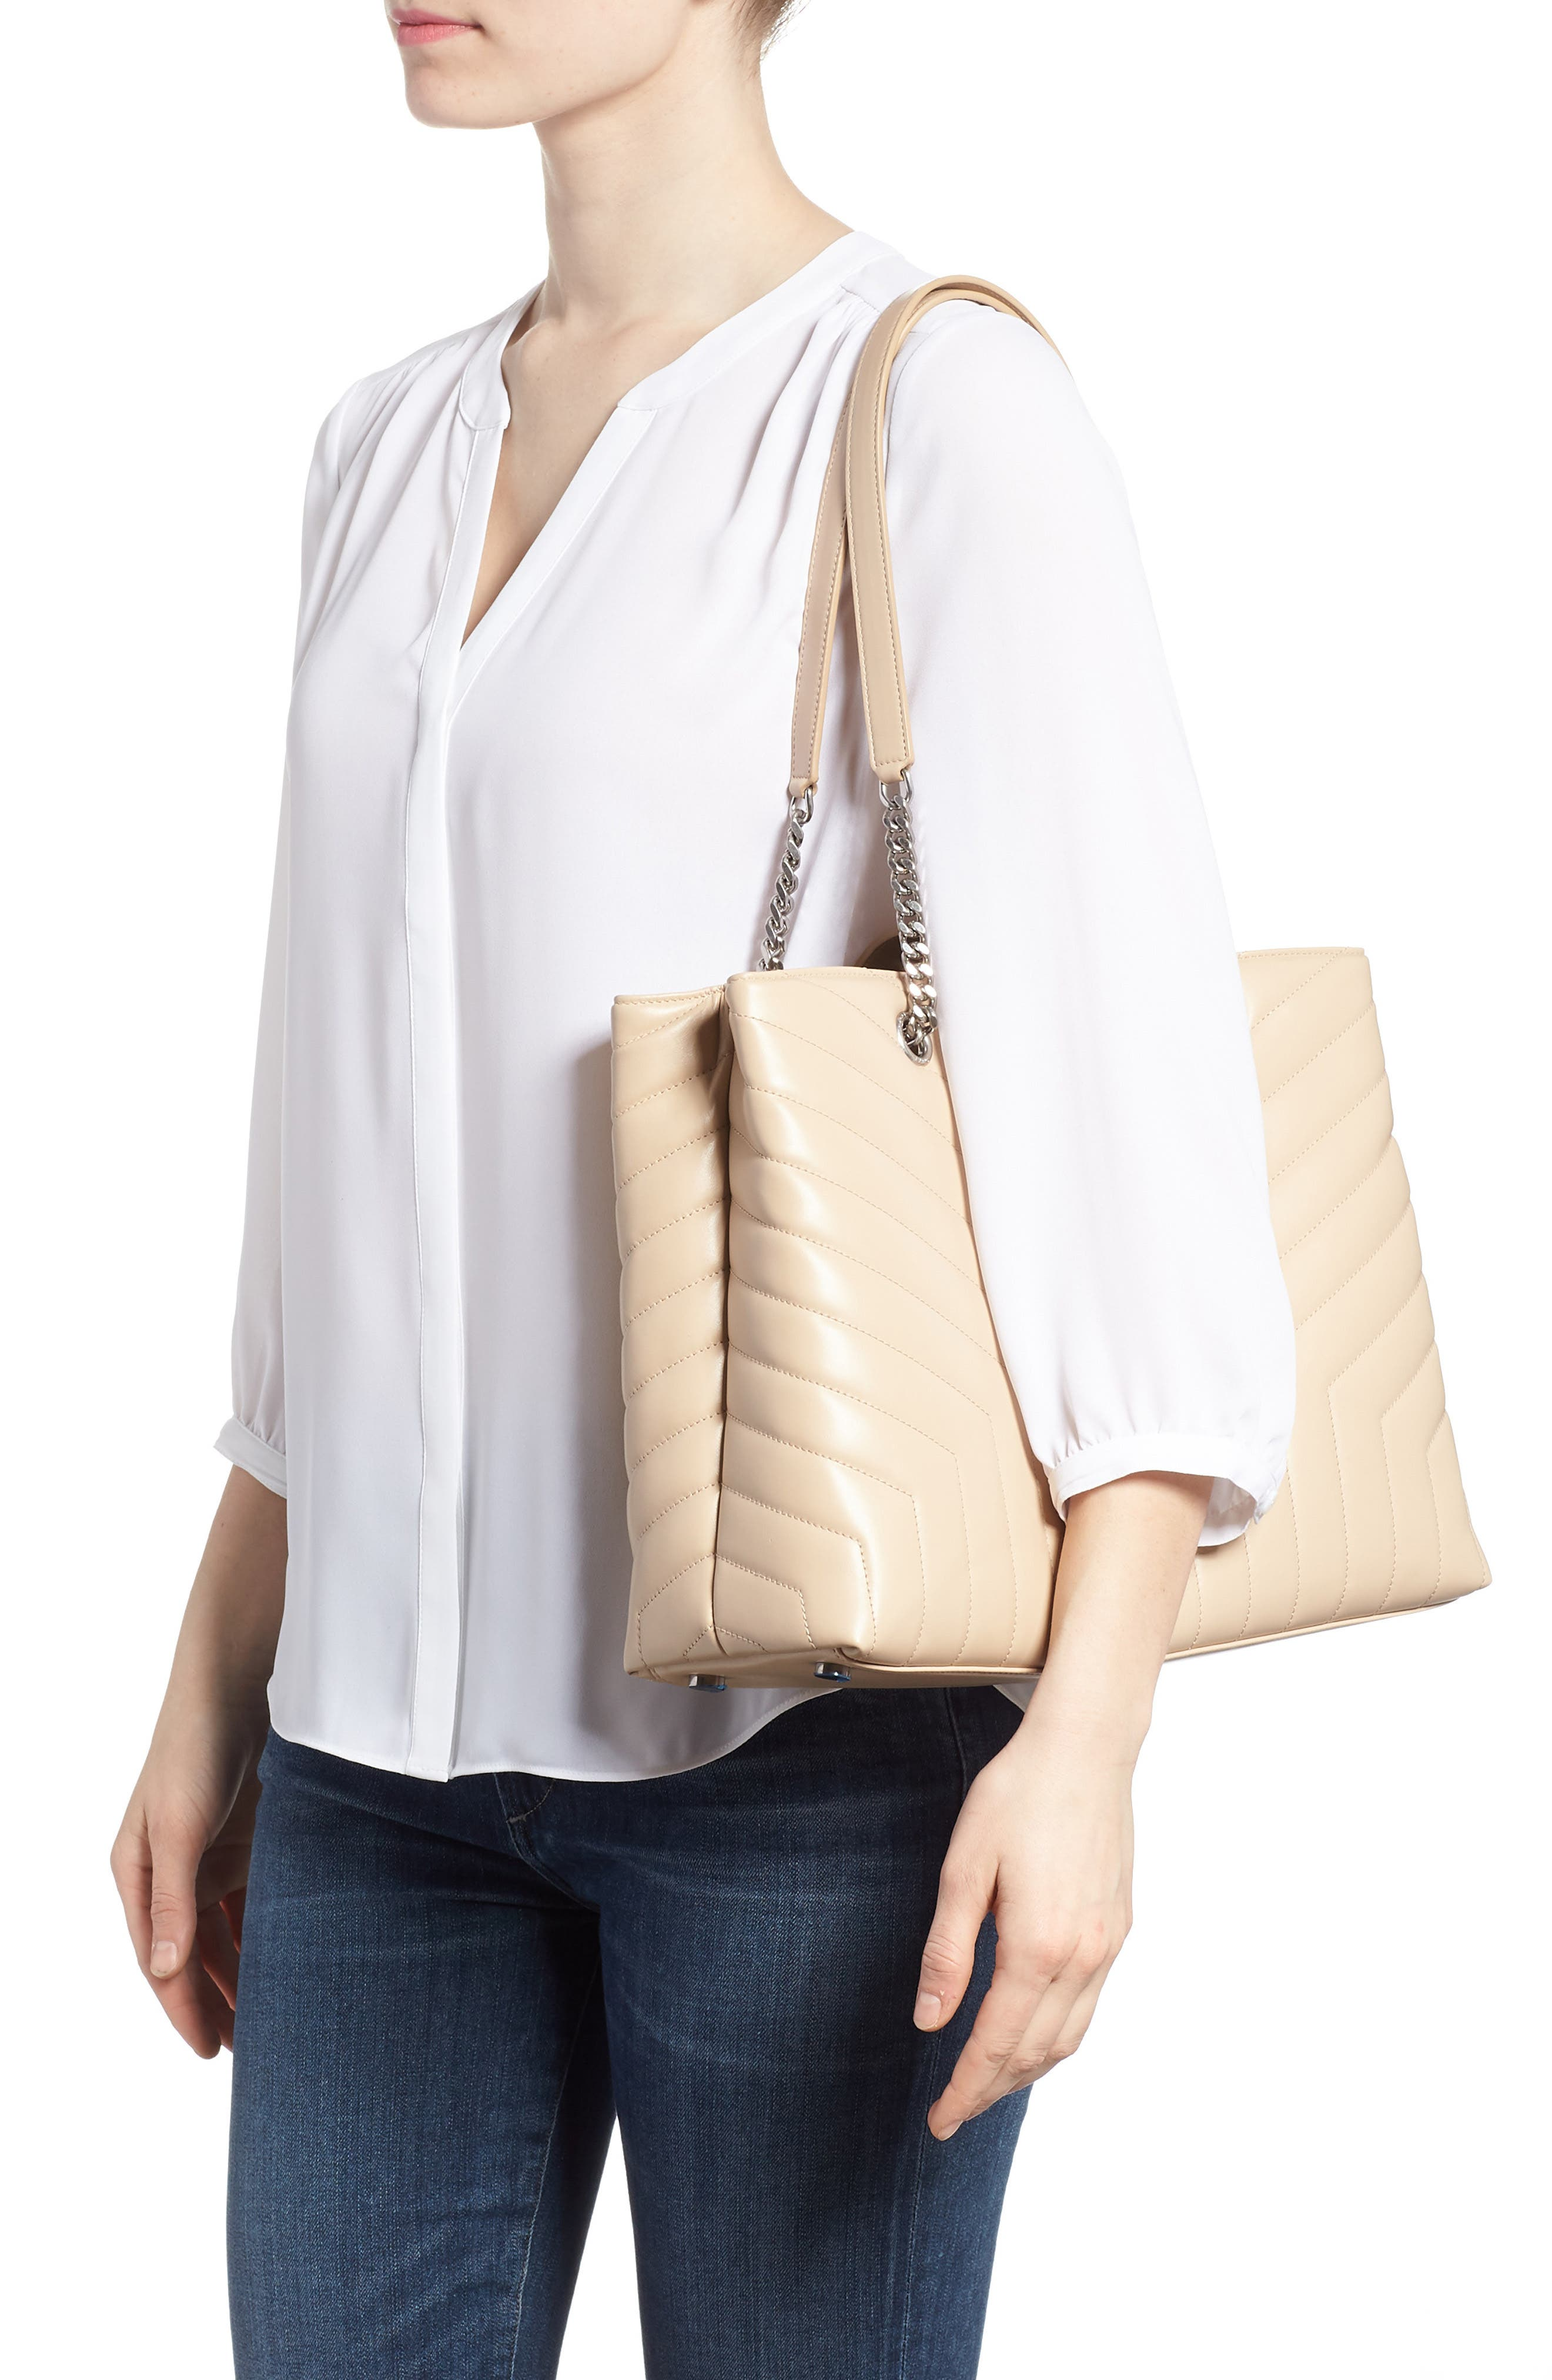 Large Loulou Matelassé Leather Shopper,                             Alternate thumbnail 2, color,                             Nude Powder/ Nude Powder